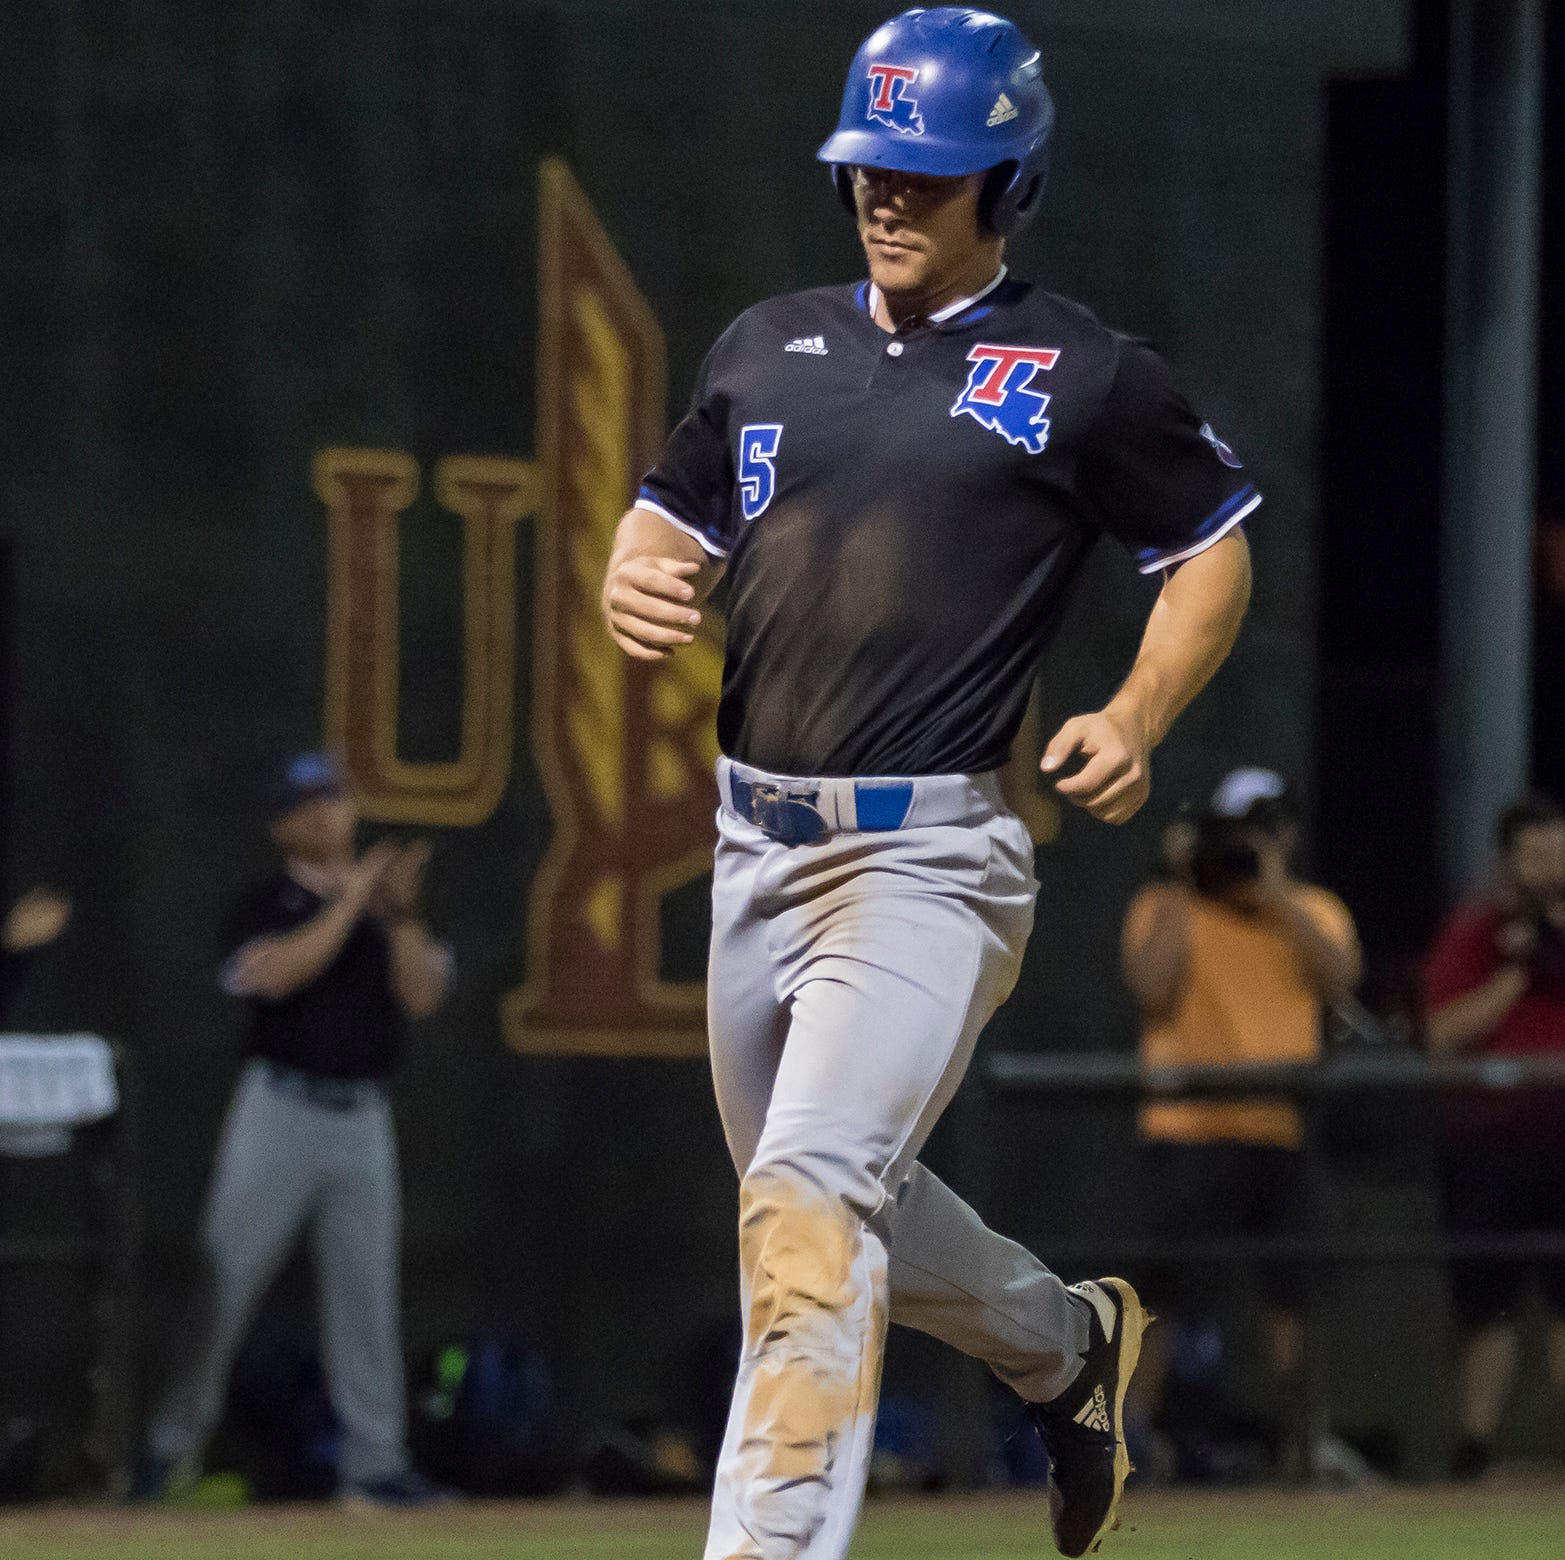 Louisiana Tech opens C-USA tourney play against Marshall